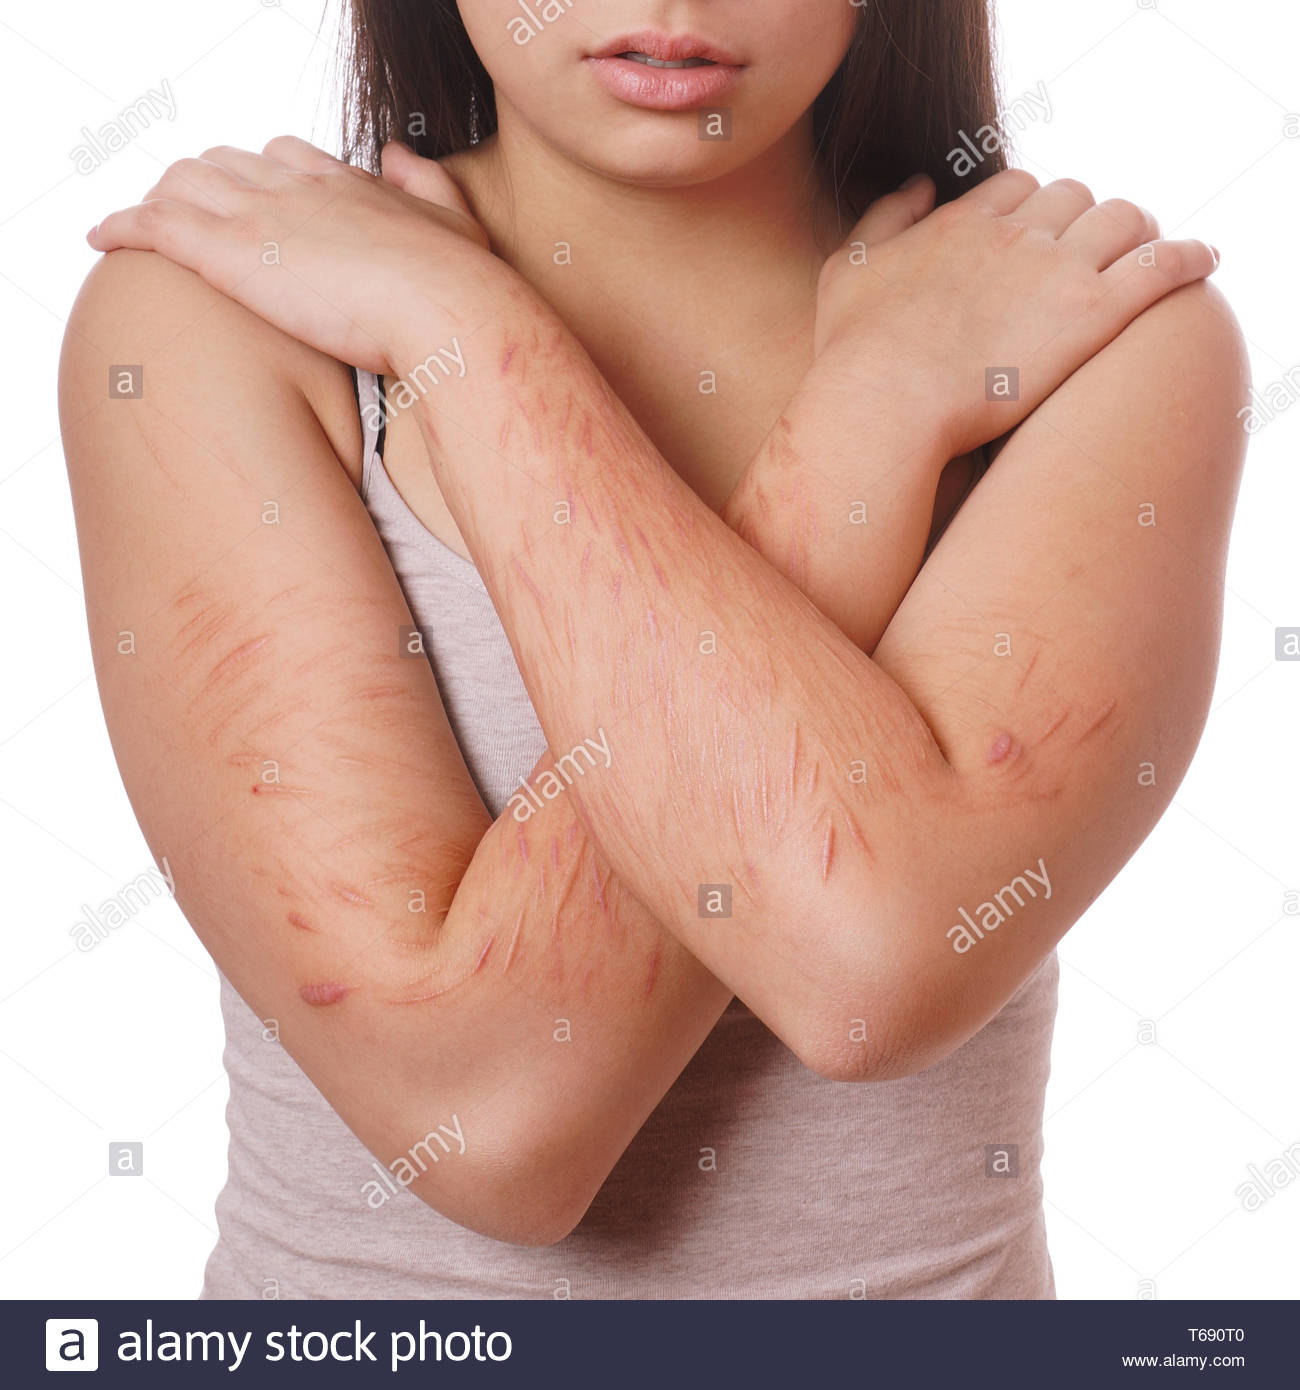 cuts and scars from self harm - Stock Image